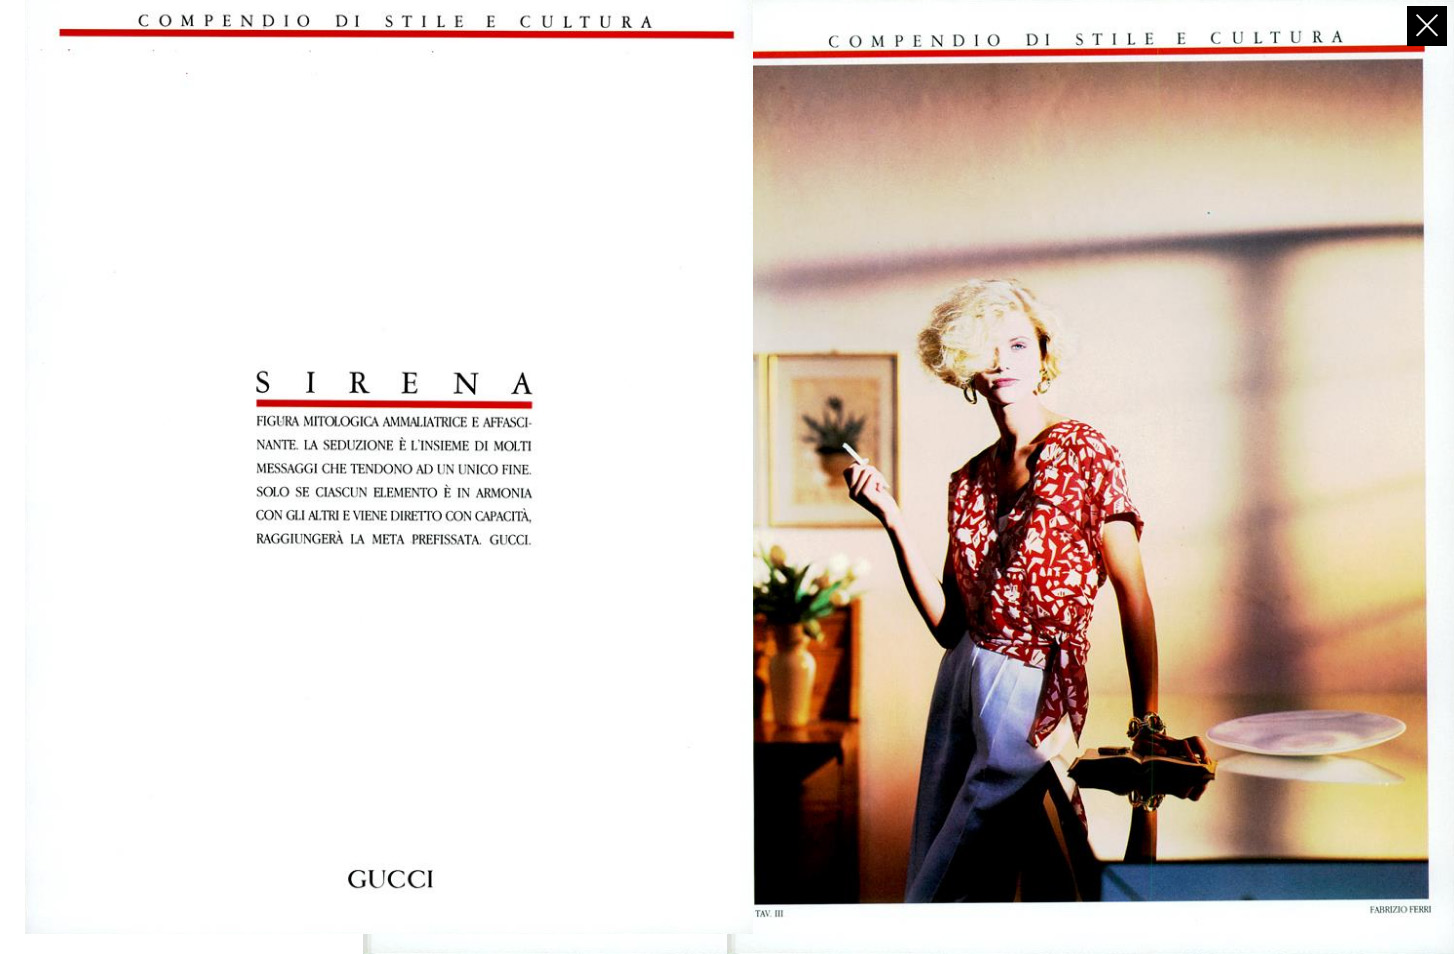 1985 Gucci Spring Summer spread - Vintage Gucci advertising campaigns archive